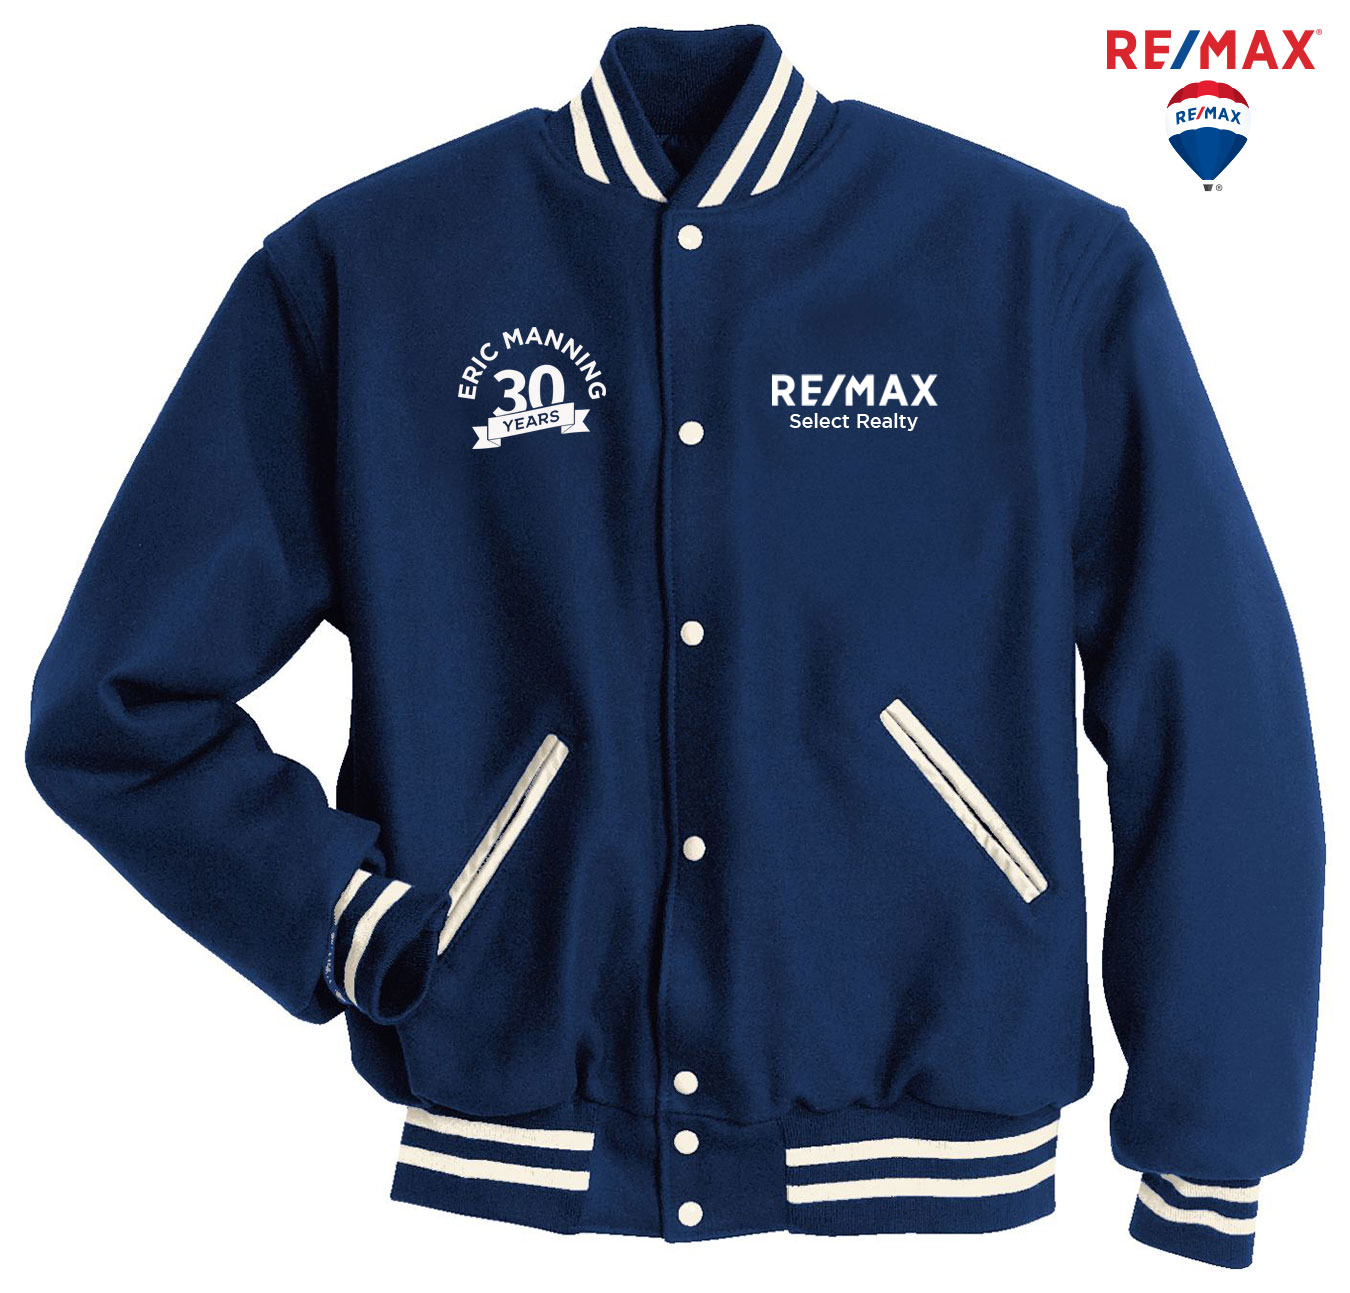 Adult Letterman Jacket - THE ANNIVERSARY/AWARDS JACKET COLLECTION